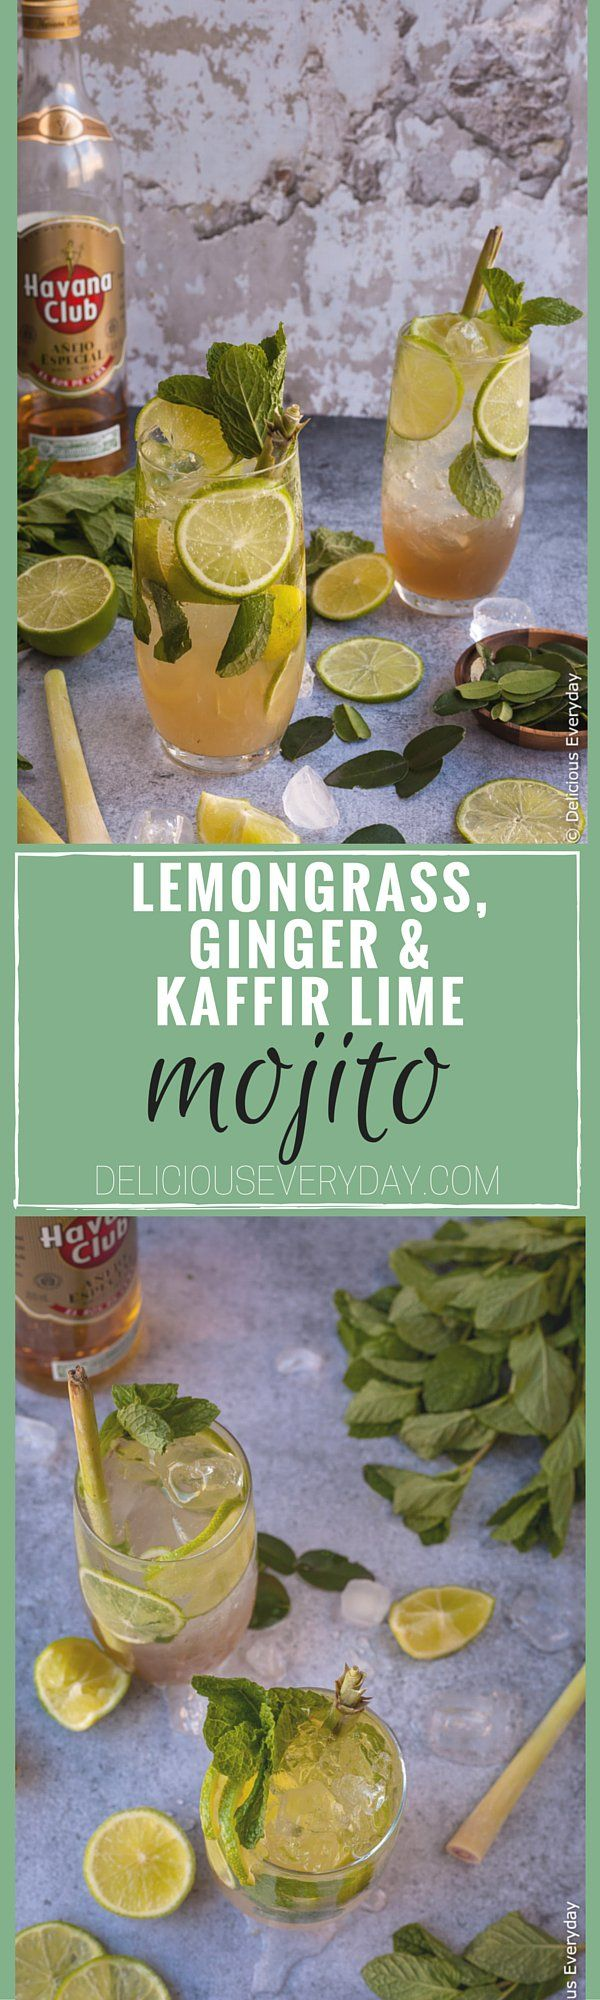 This Lemongrass, Kaffir Lime and Ginger Mojito is a beautiful update to the classic. Ginger adds a punchy kick while the lemongrass and kaffir lime add a lovely floral note. | Click for the recipe